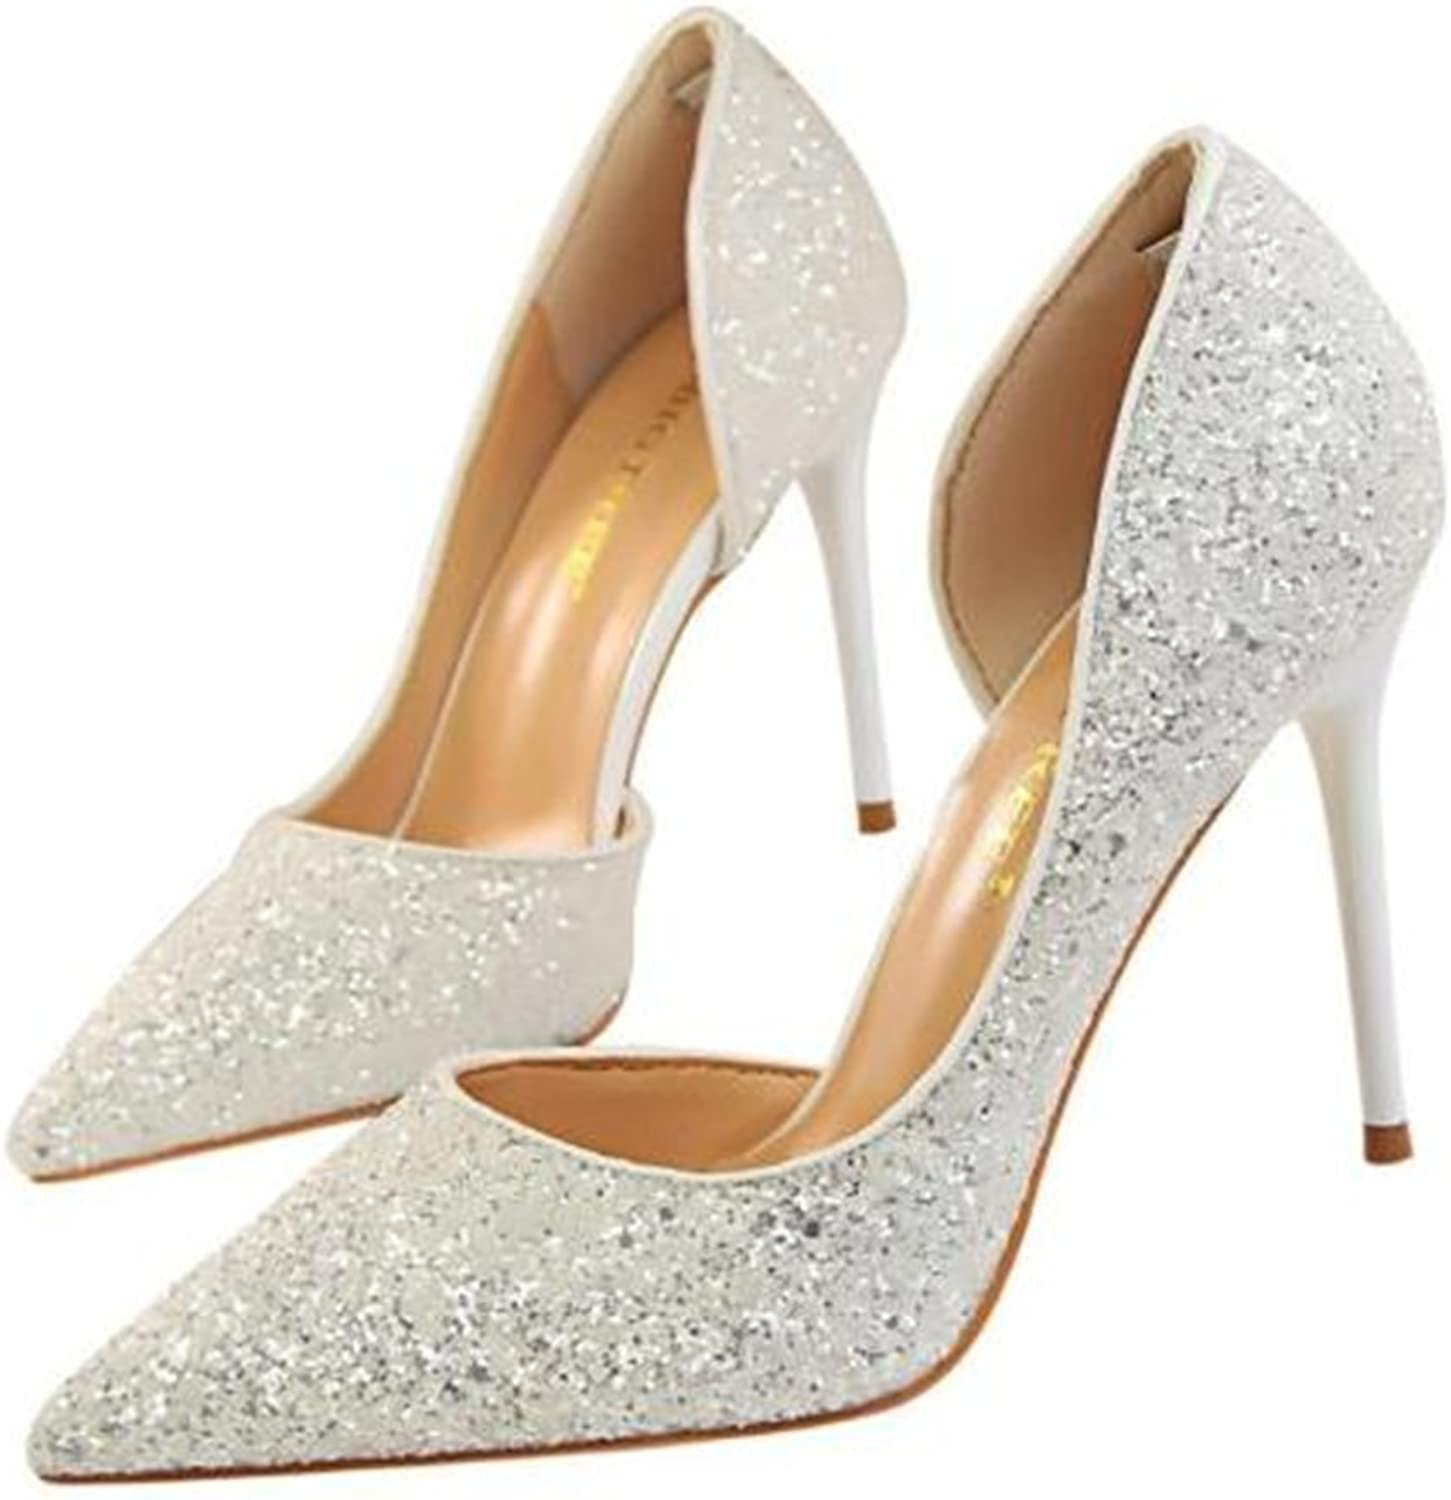 MIKA HOM Stiletto Pumps, Sexy Pointy Toe Stiletto Heels Slip on Wedding shoes Dress Party Heeled Pumps